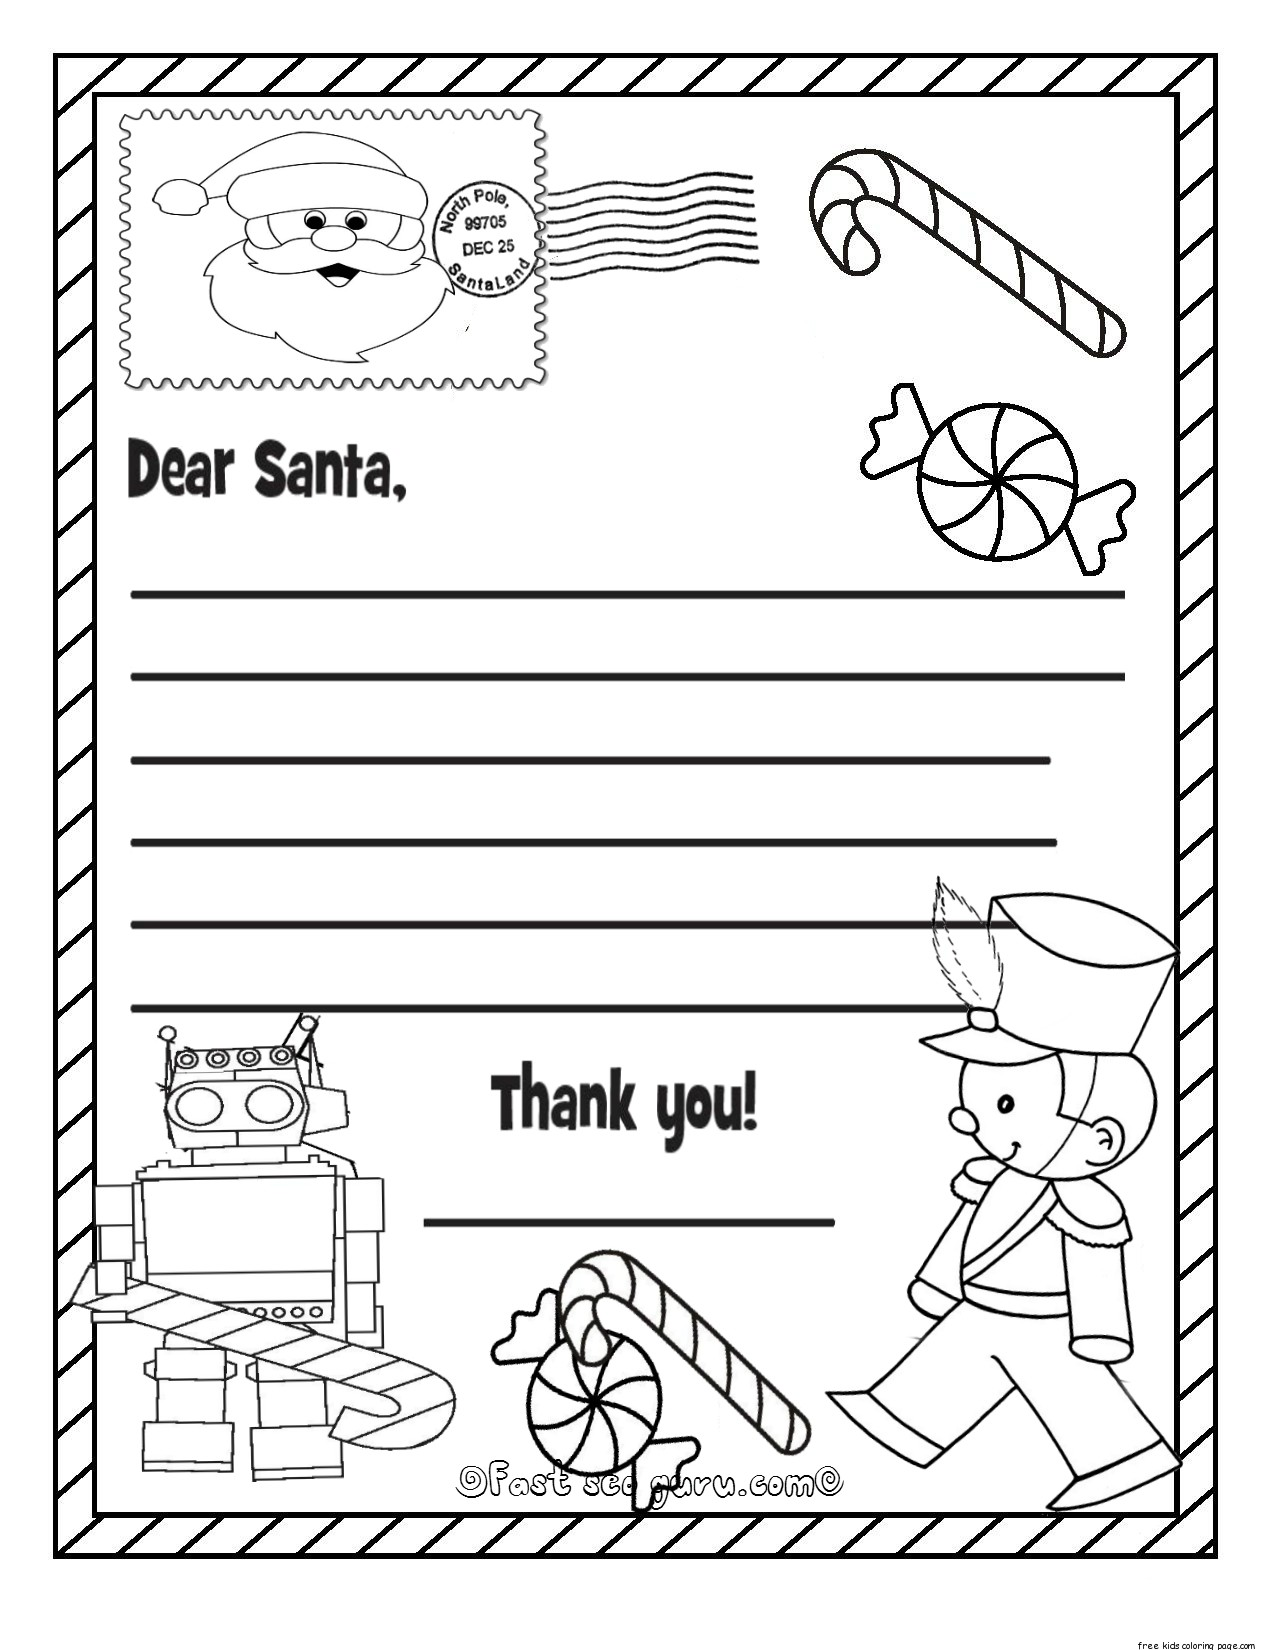 Printable Christmas Wish List To For Kids Kidsfree  Free Christmas Wish List